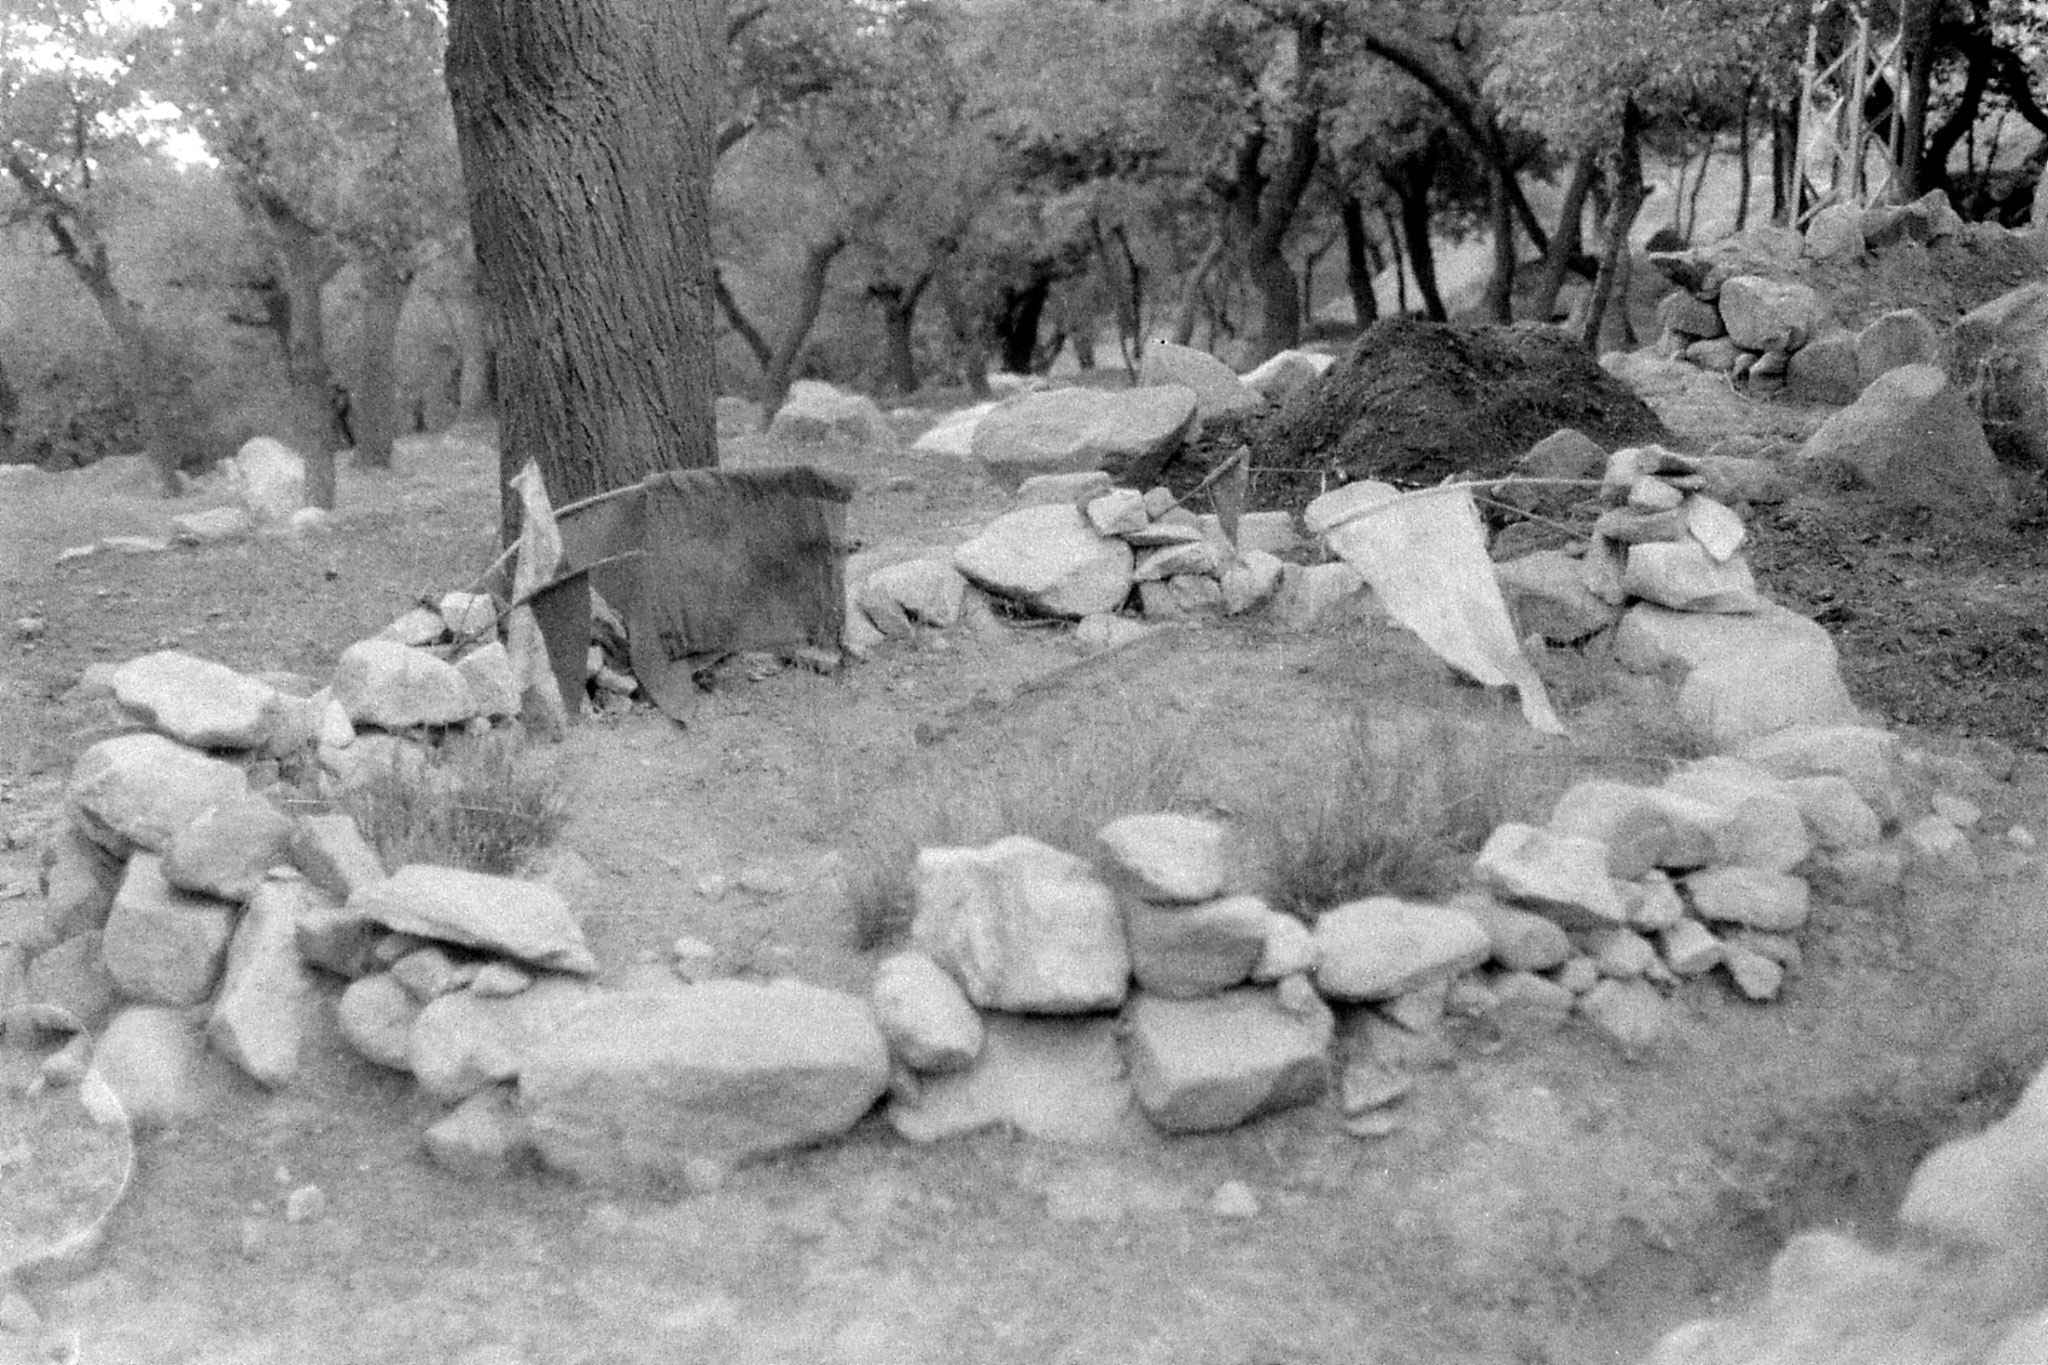 18/10/1989: 4: grave with flags on just before Machulu